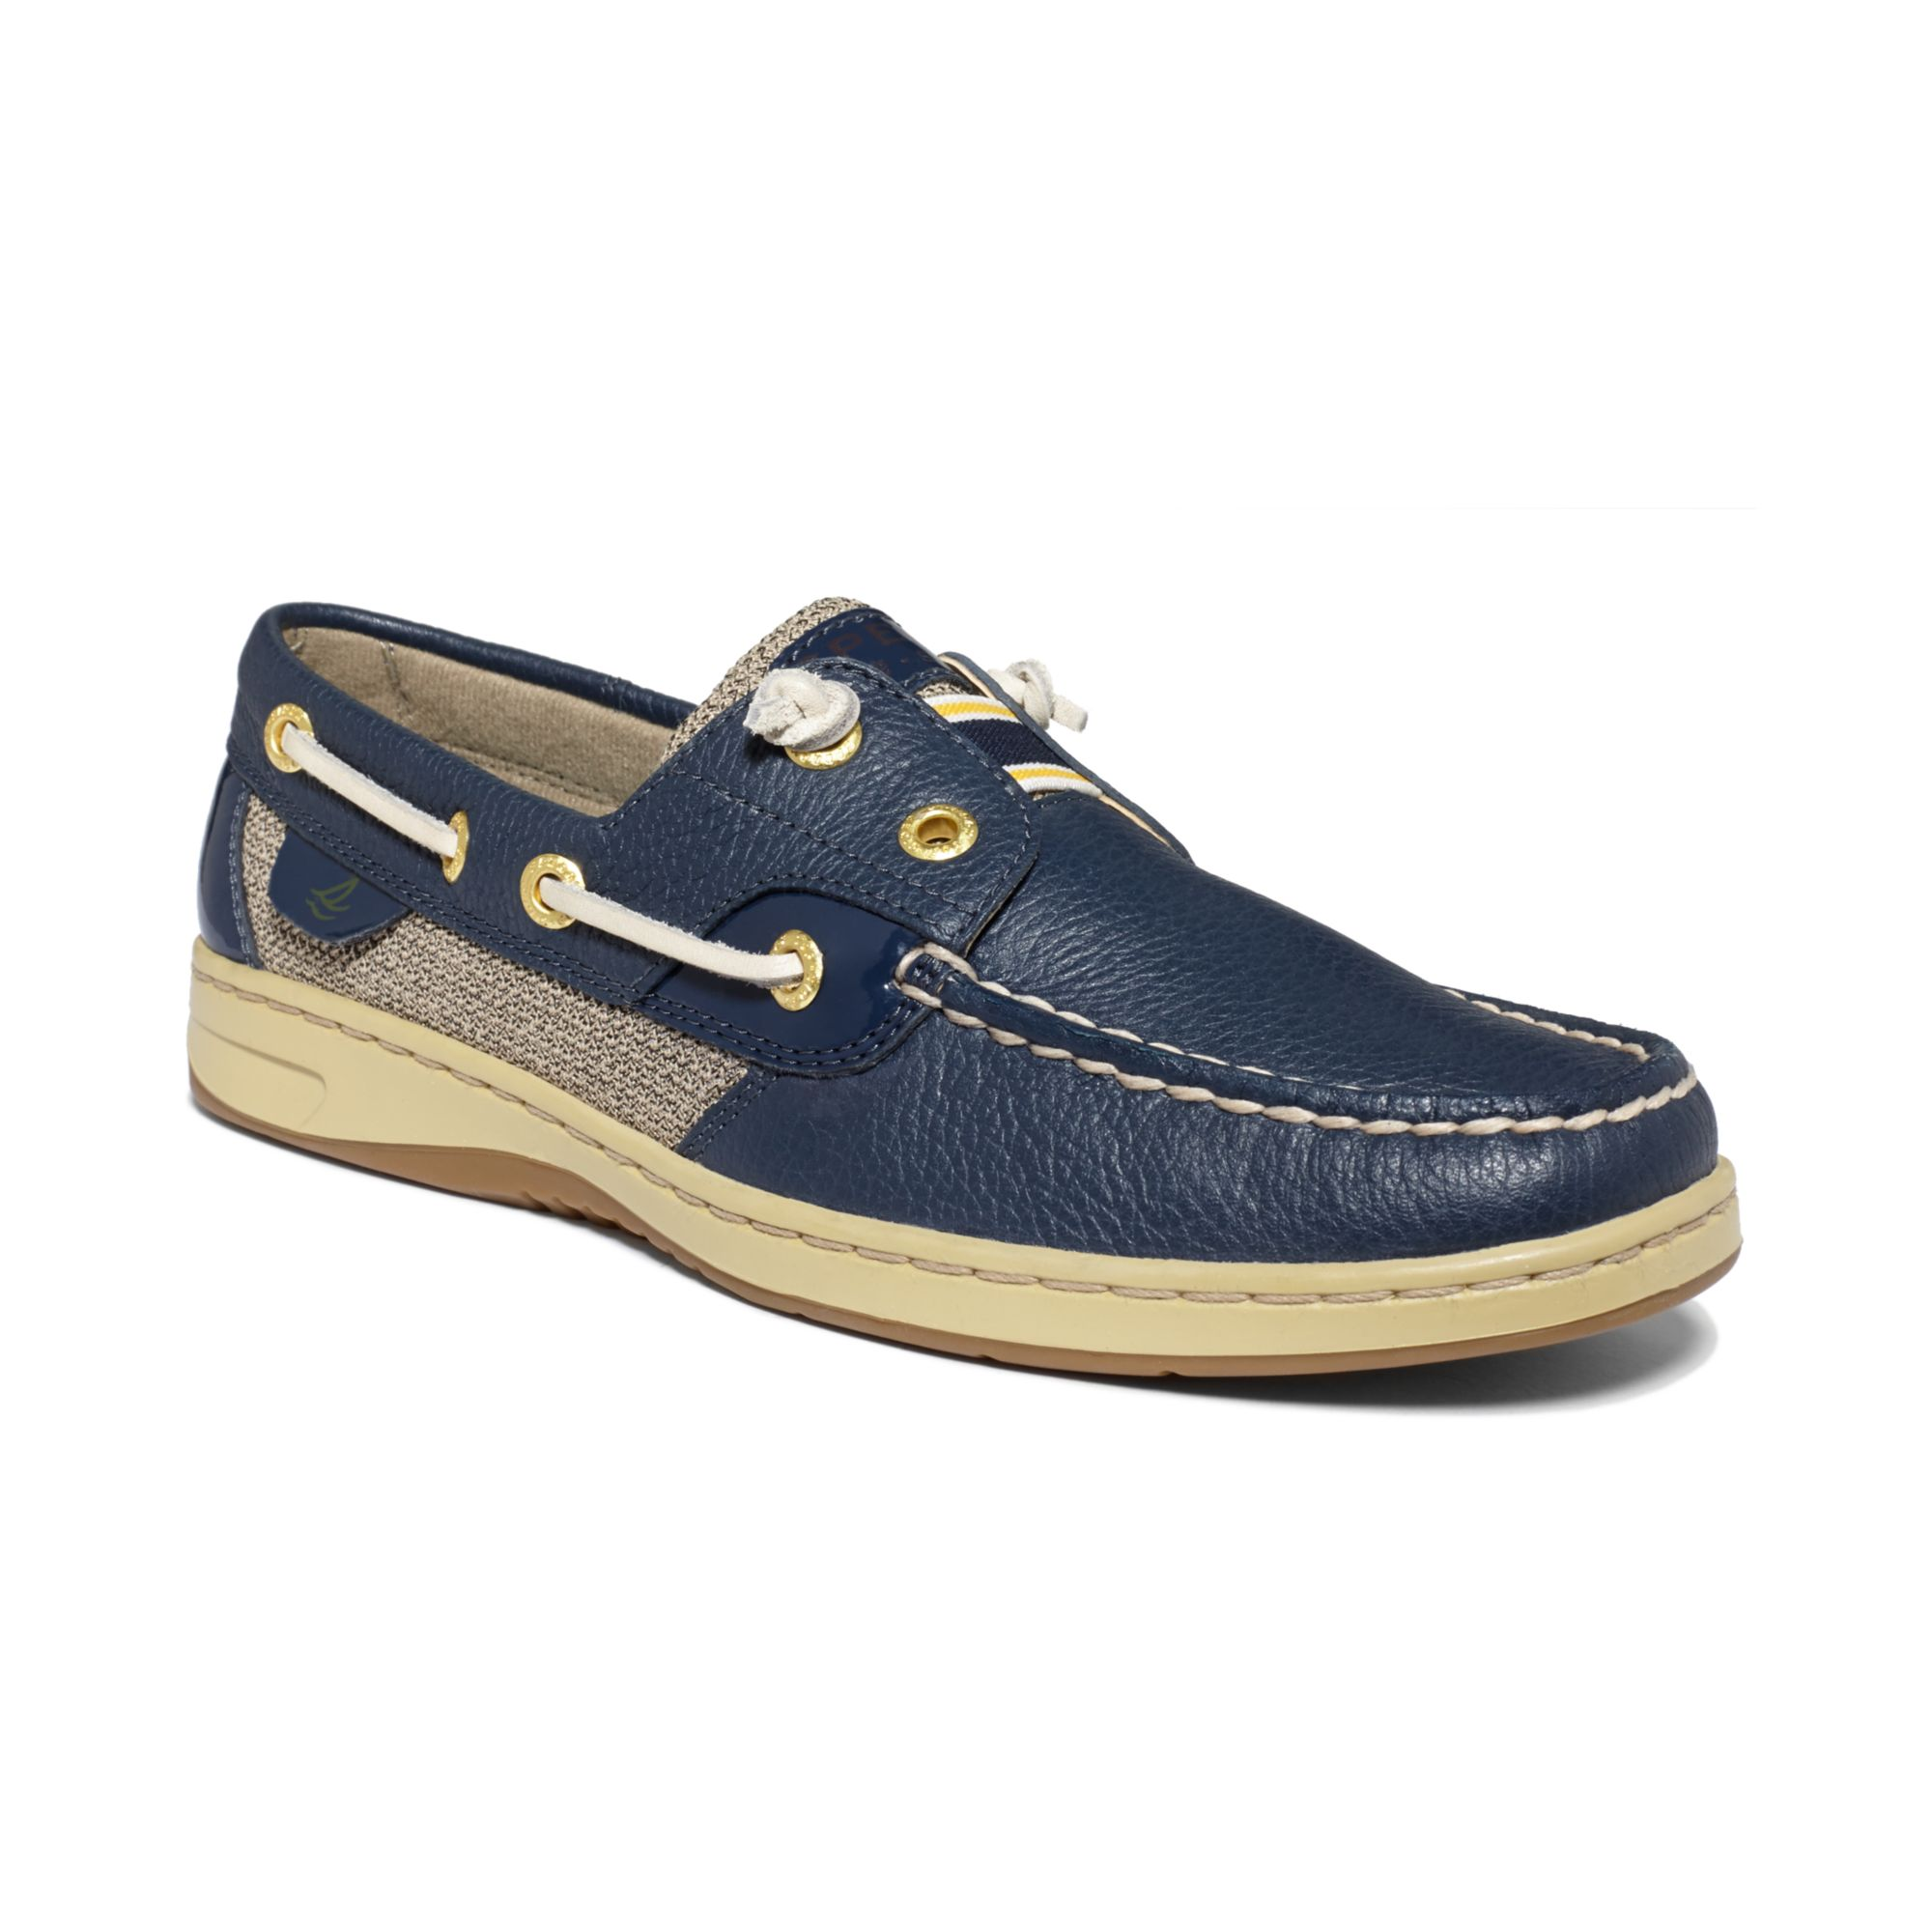 Sperry top sider womens rainbowfish boat shoes in blue for Best boat shoes for fishing